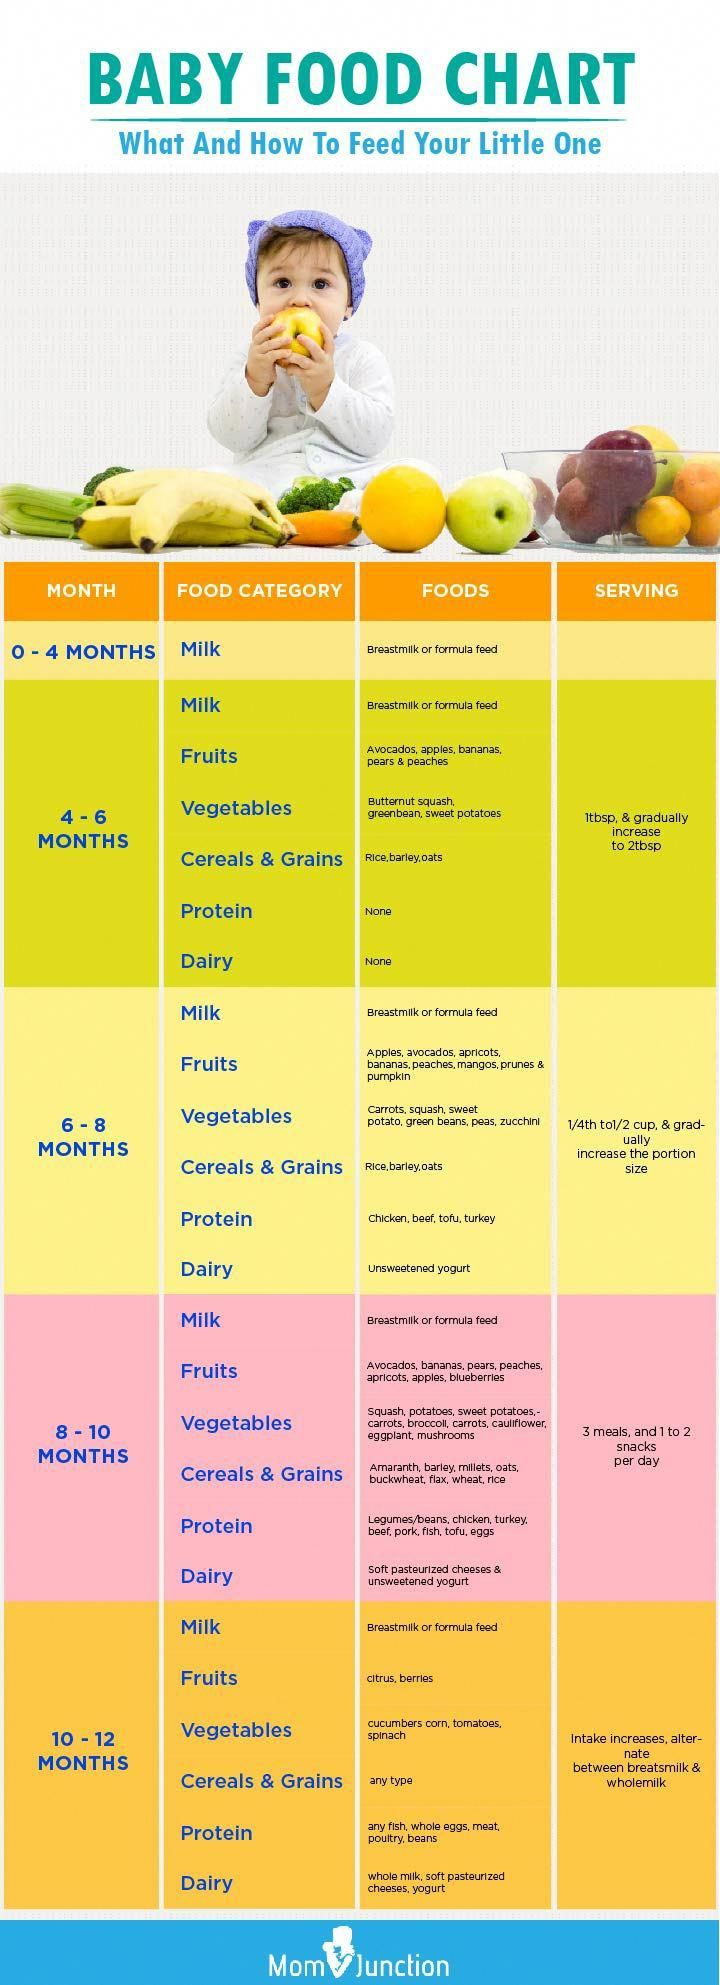 7 Essential Tips To Follow For Your Baby Food Chart